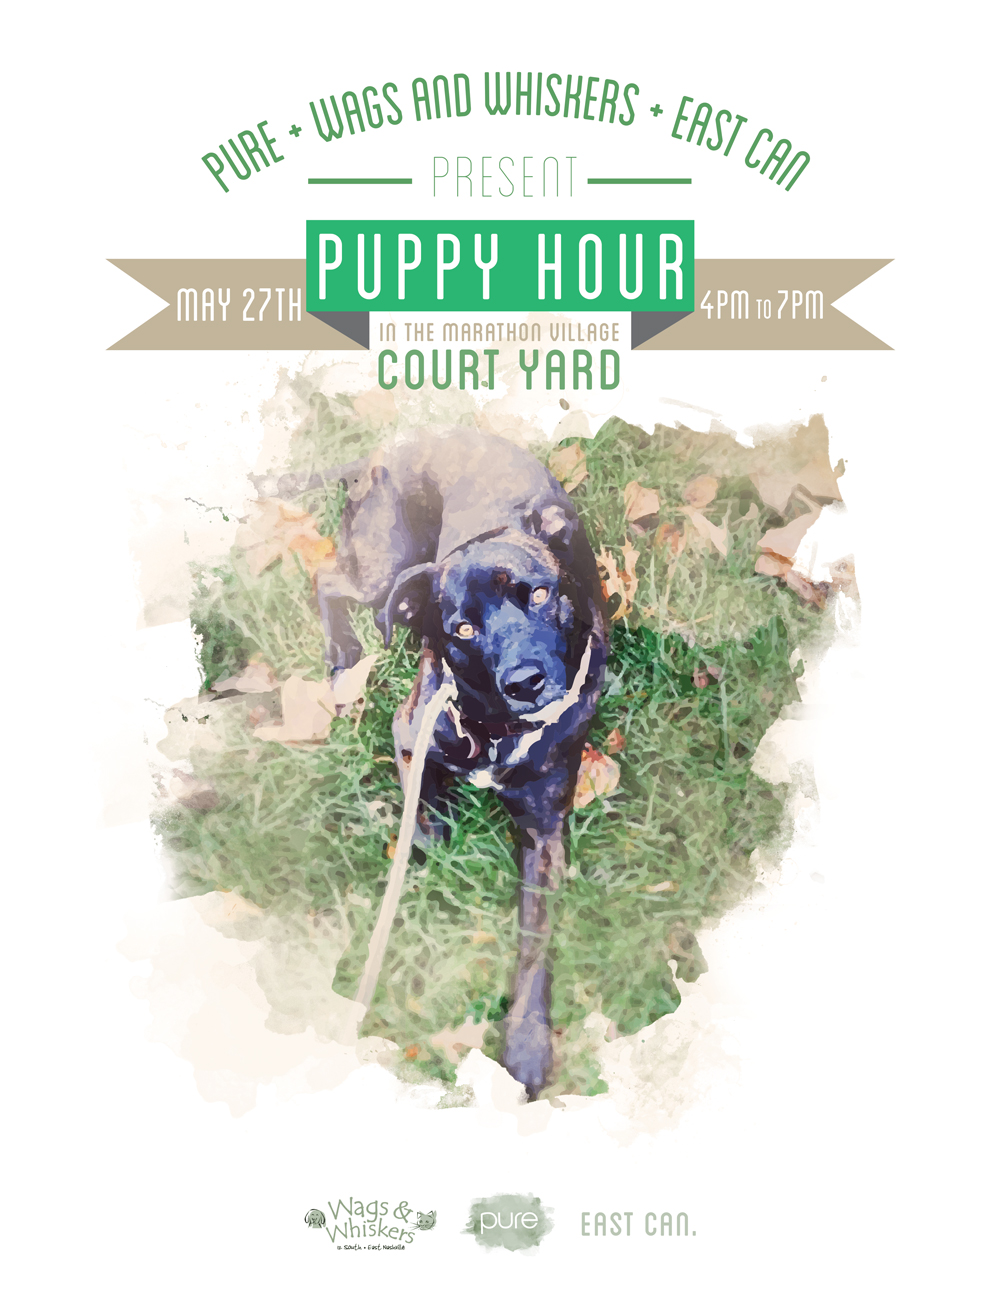 Bring your pups or adopt one! Come hang with us for happy hour twofor one at Corsier Distillery and or ice cream floats at Soda Parlour! We will have giveaways and a super awesome raffle! Just Wags & Whiskers, East Can and Pure for Puppy hour!